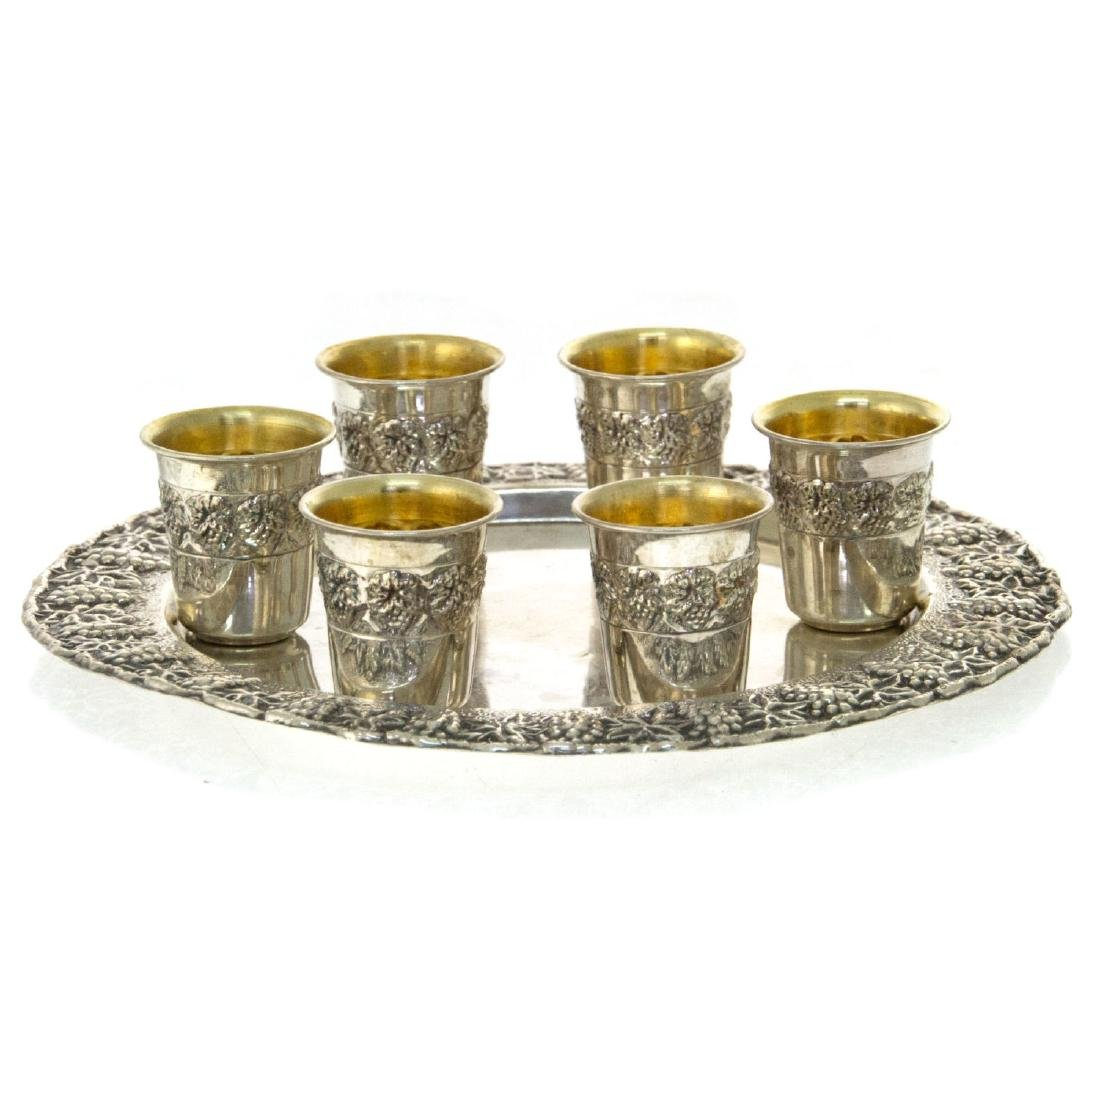 Six Sterling Silver Cups on Tray.